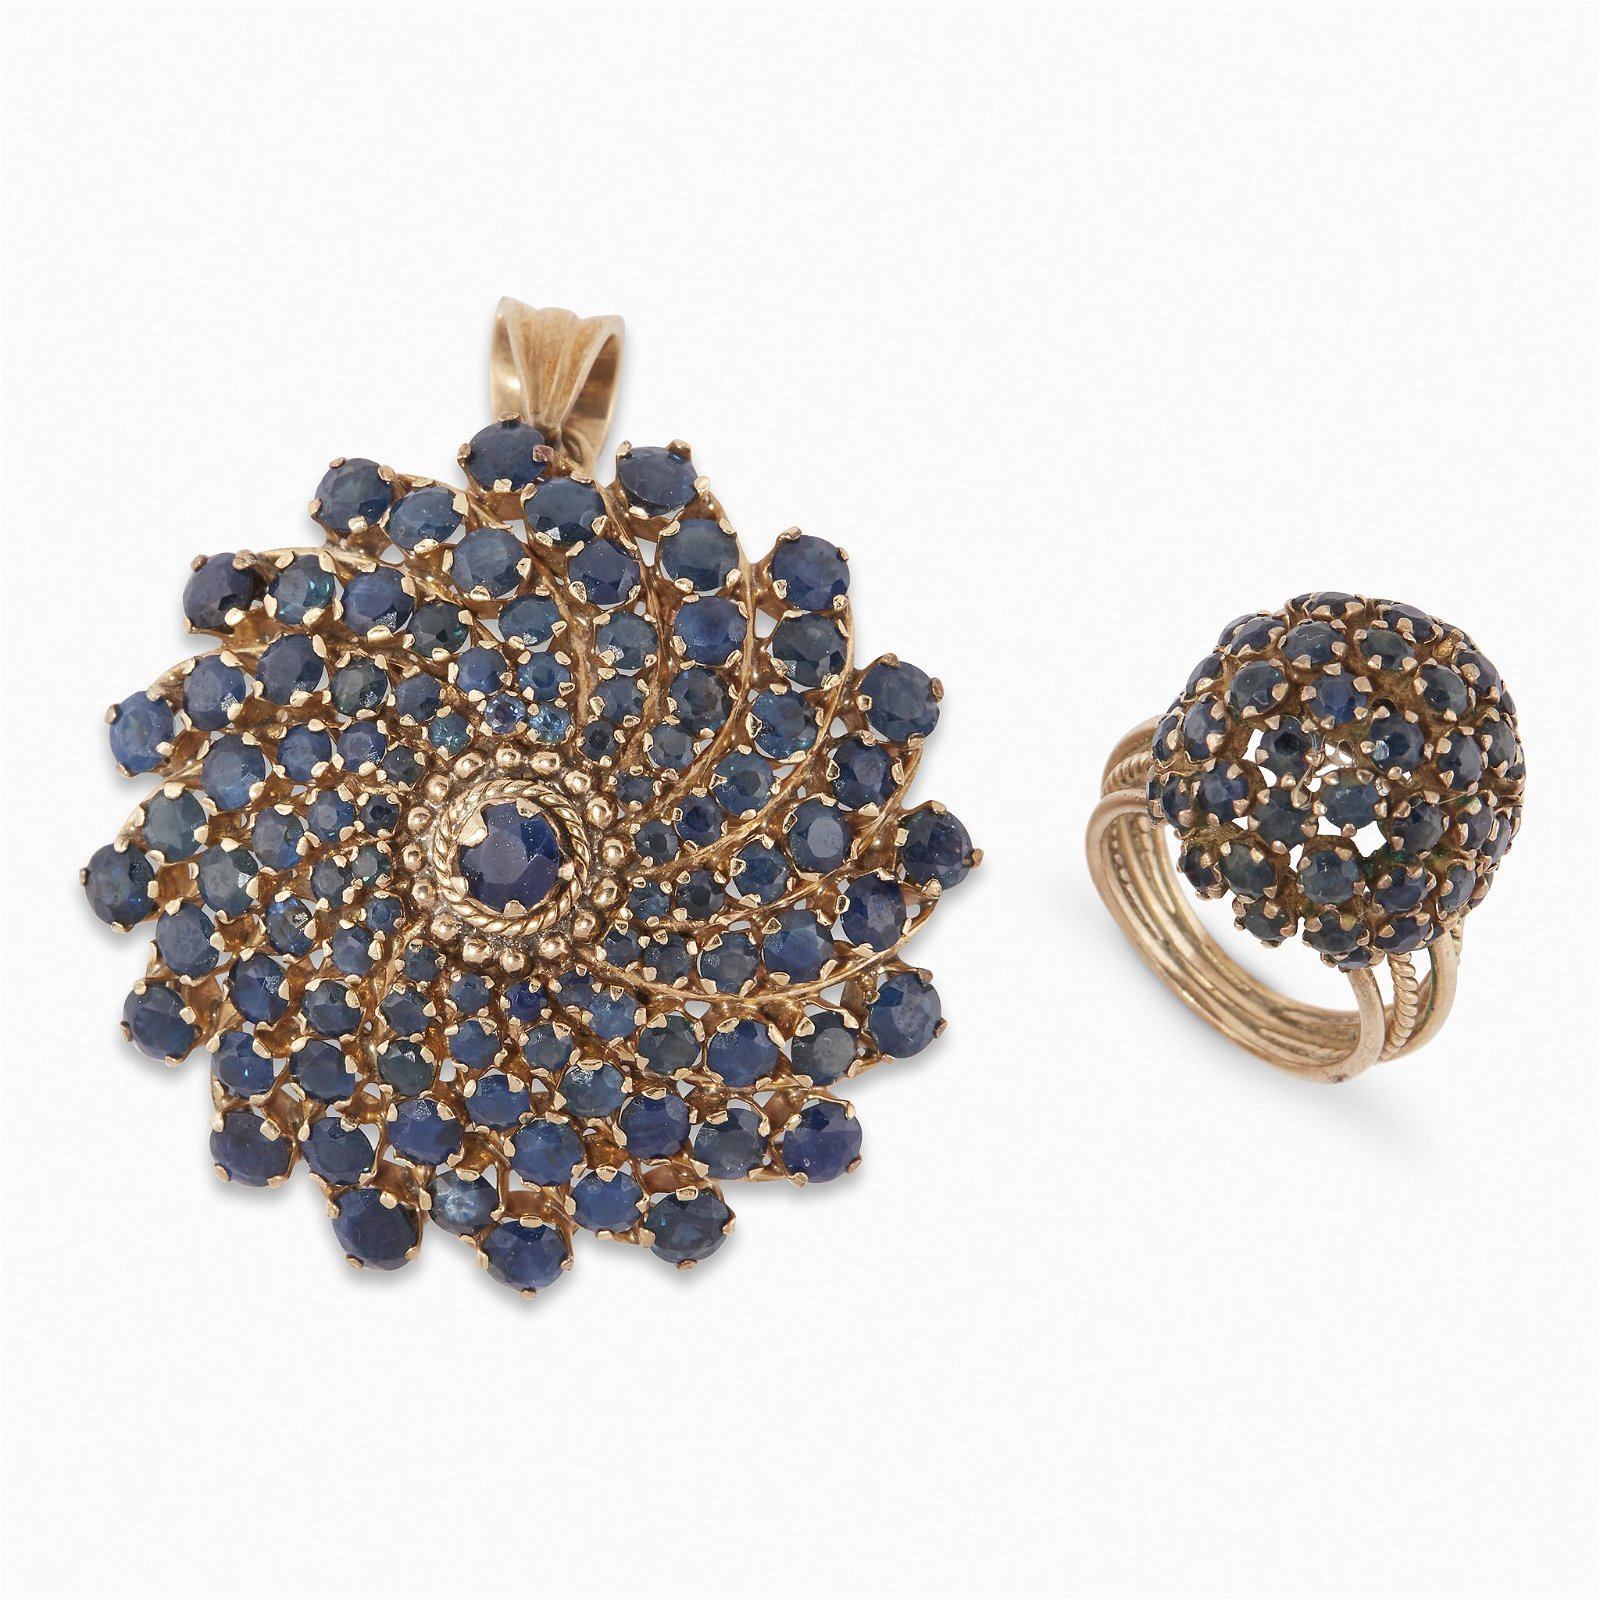 A sapphire pendant brooch and ring suite,